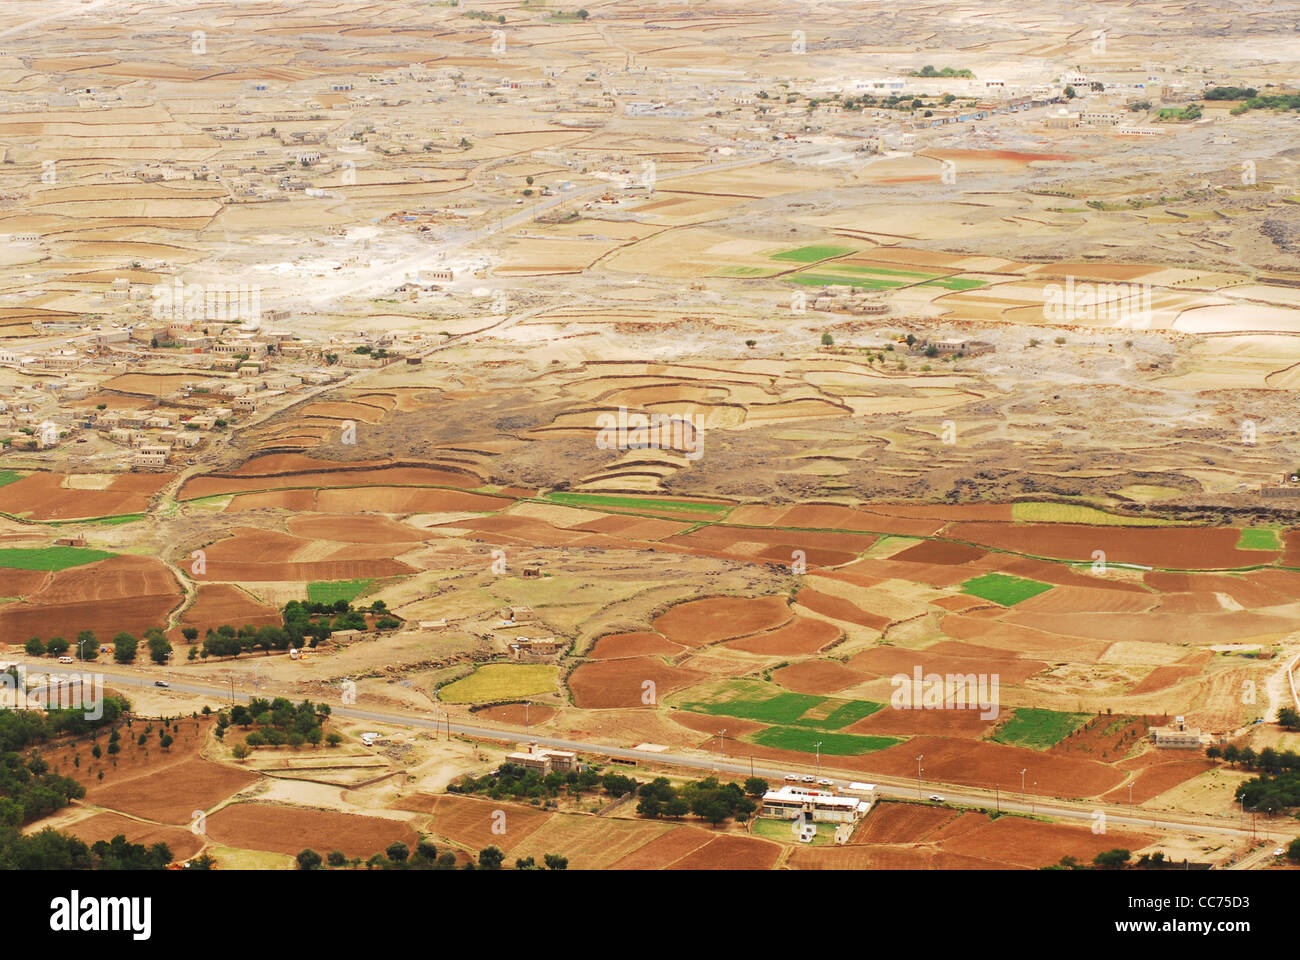 Yemen, Kowkaban, aerial view of farm fields, fallows, patchwork landscape with mountains in the background Stock Photo